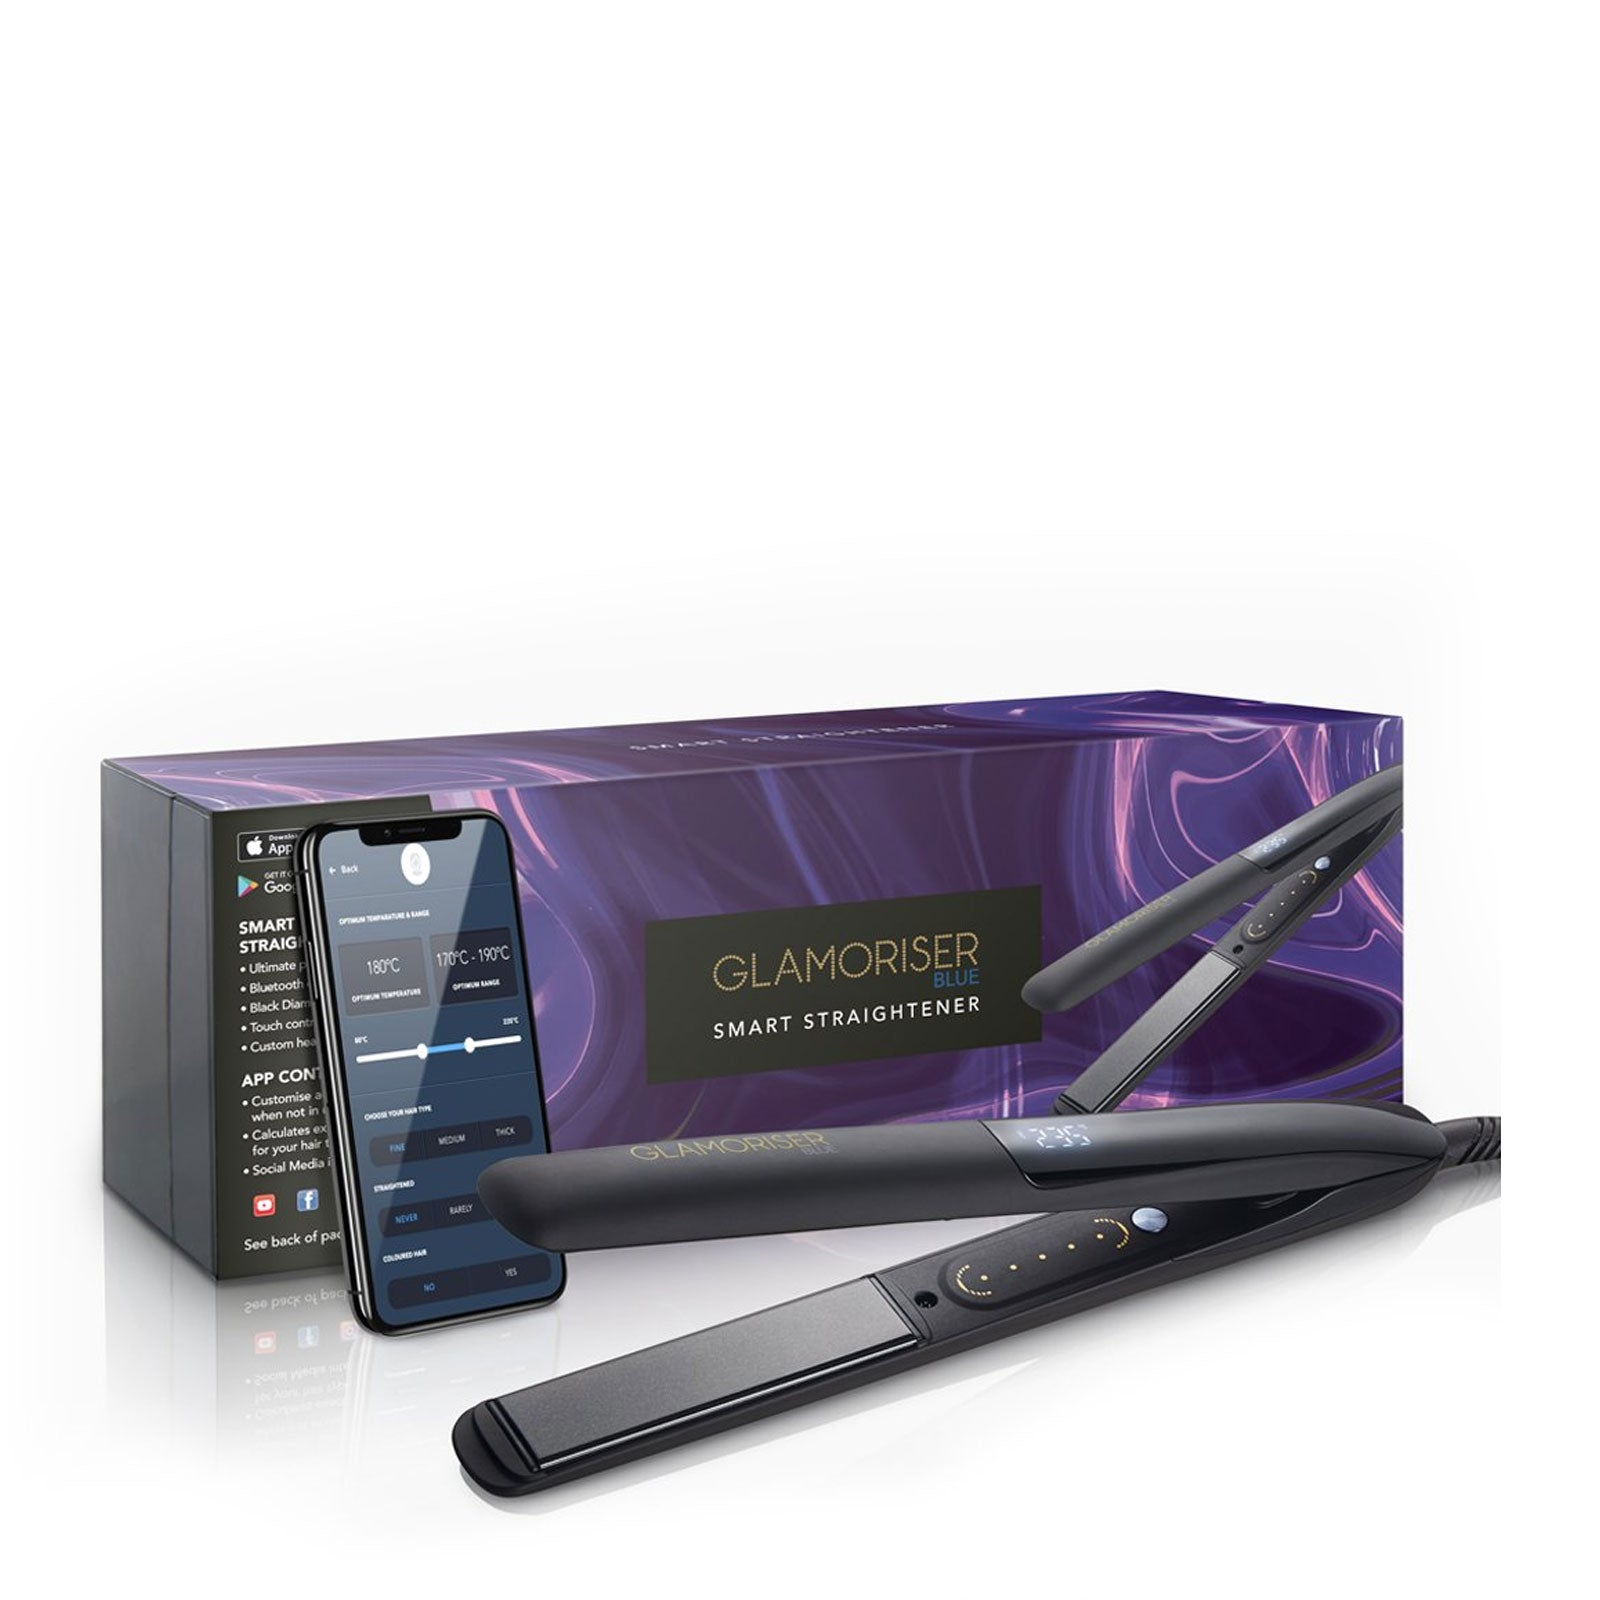 Glamoriser Bluetooth Hair Straightener